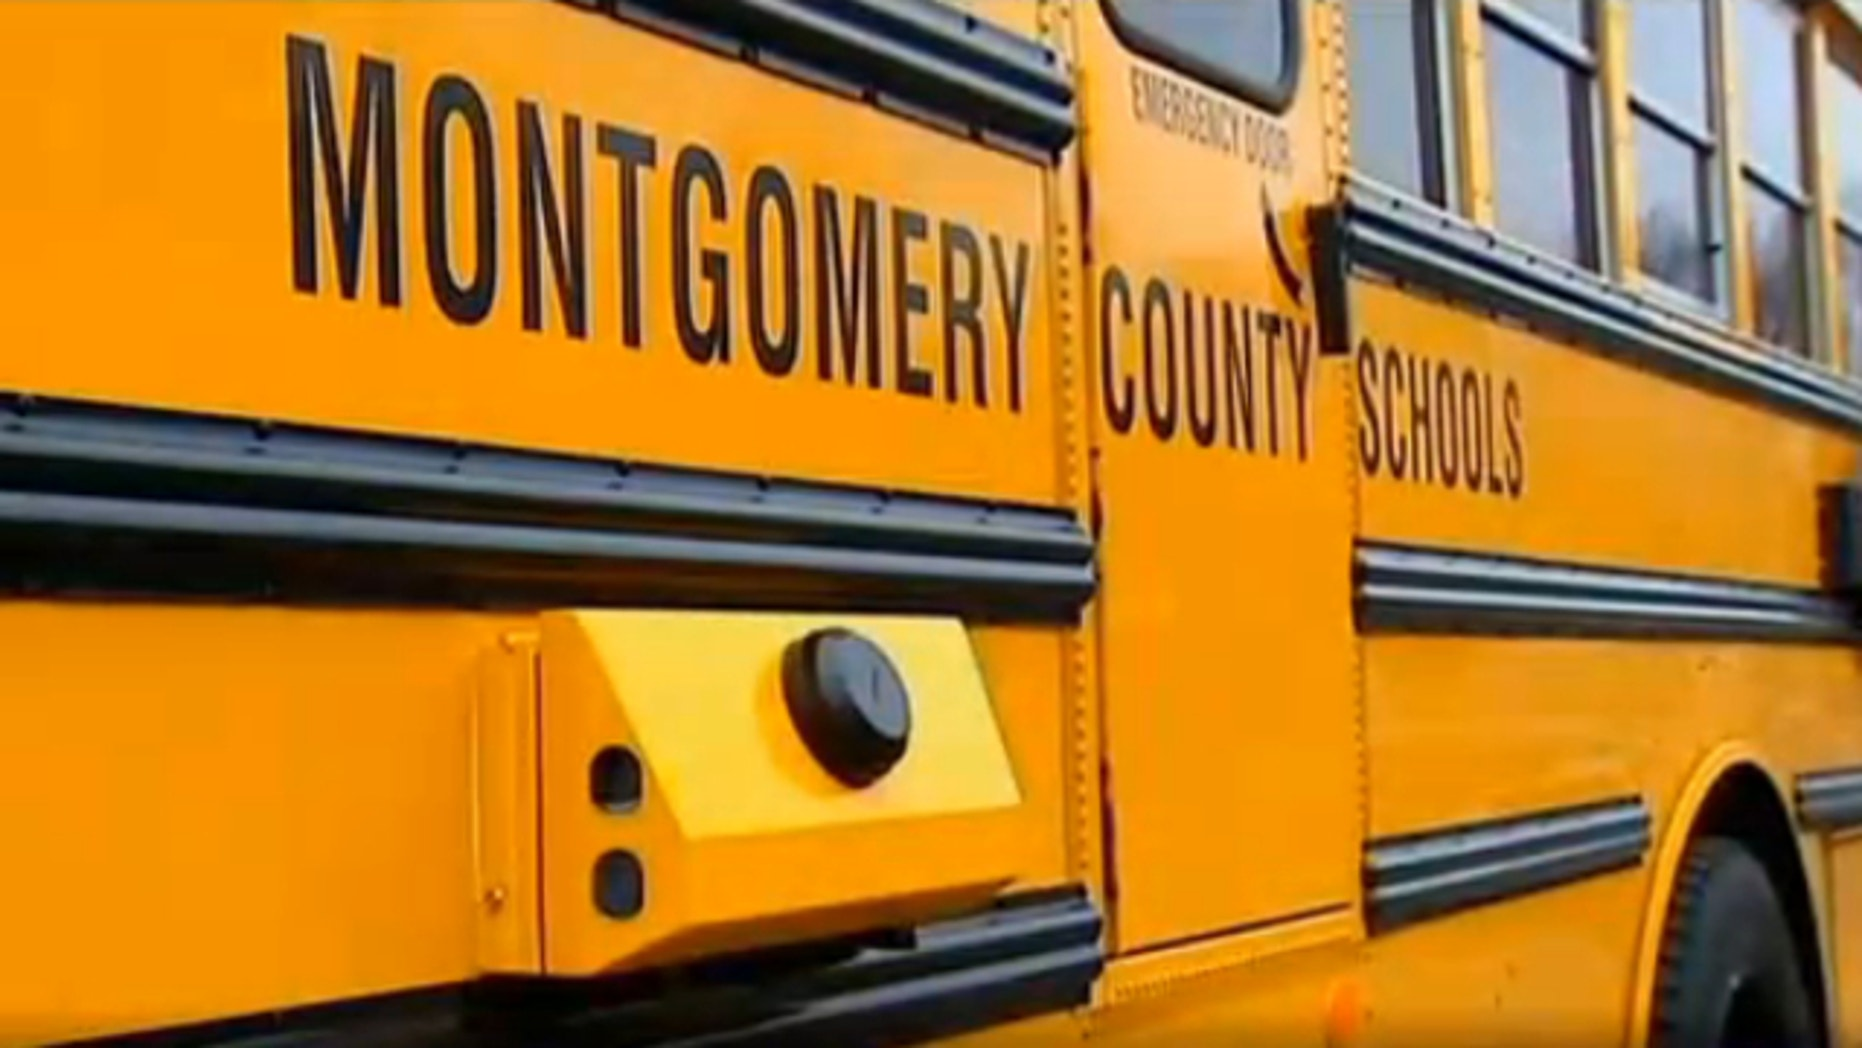 Montgomery County Public Schools is reportedly spending $250,000 to outfit buses with cameras to target drivers passing by stopped school buses.